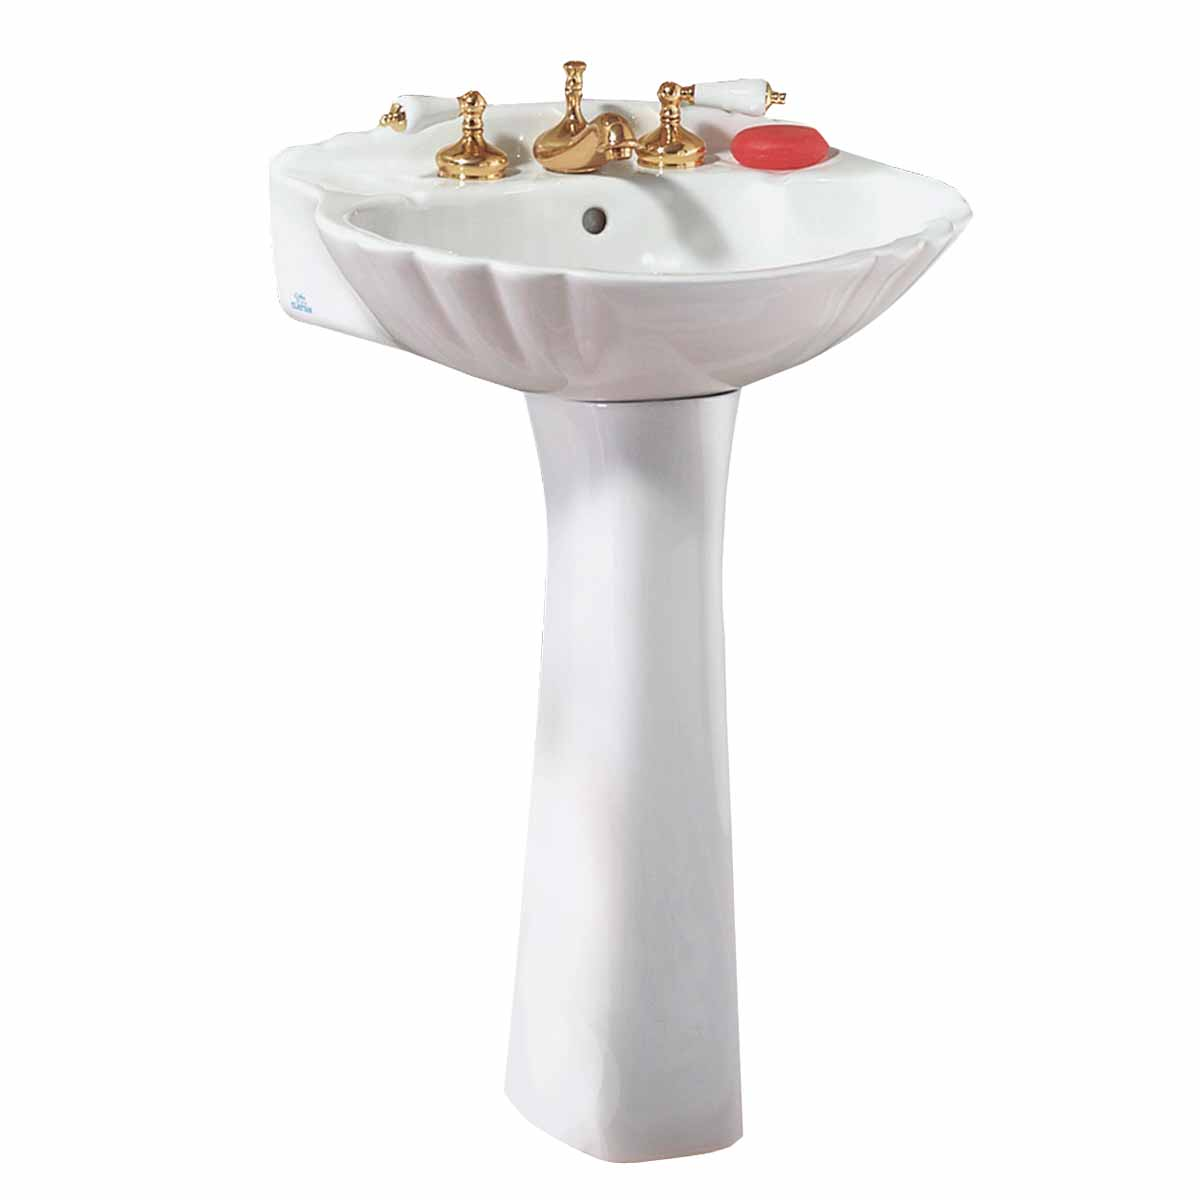 Shell Bathroom Sink : Bathroom Pedestal Sink White China Shell 8